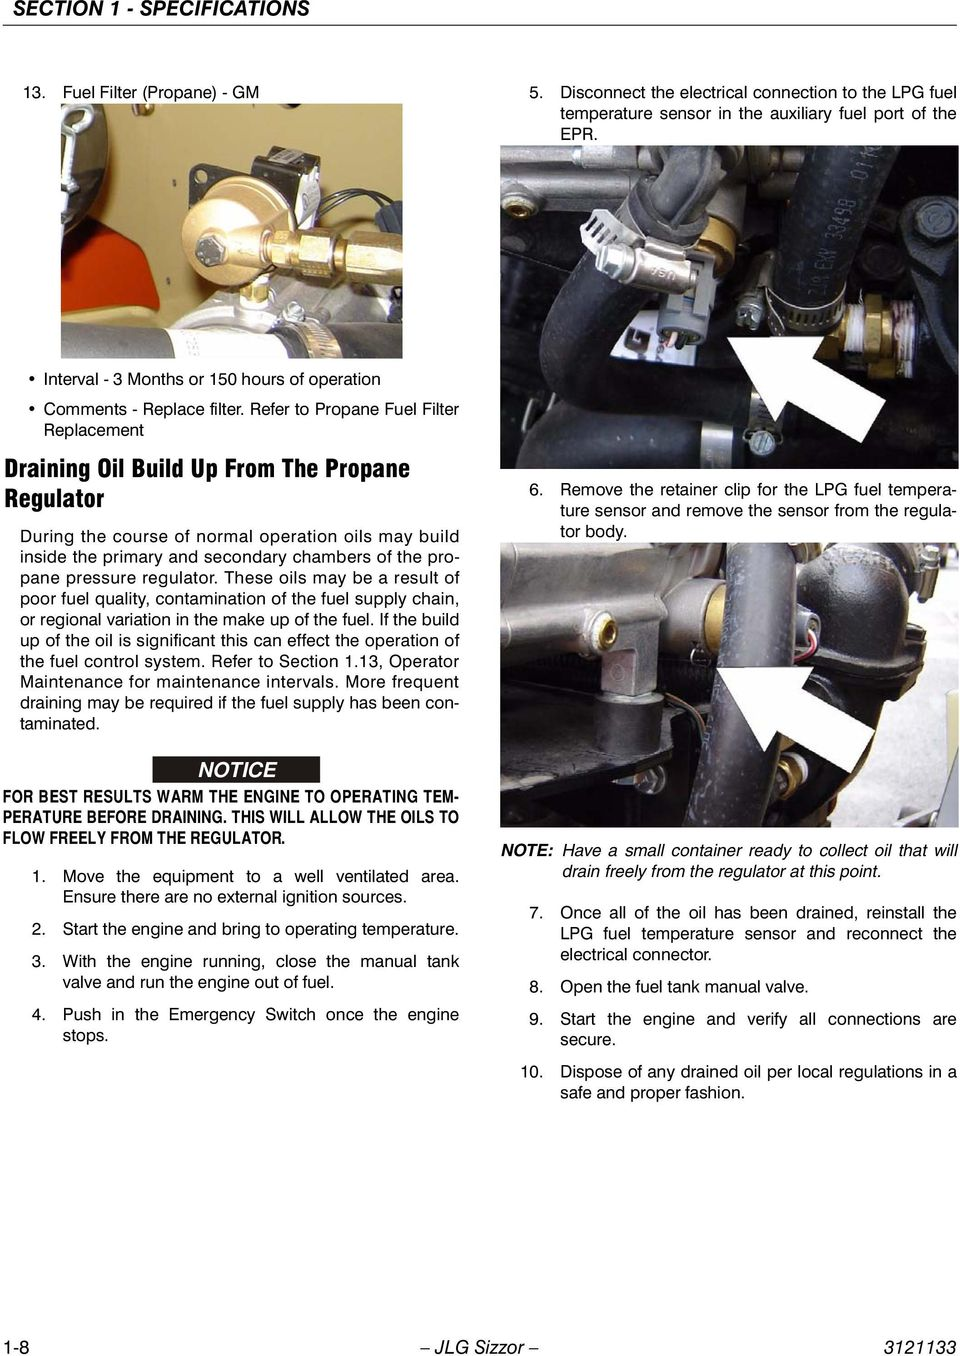 Service Maintenance Manual Models 3394rt 4394rt Prior To S N 300zx Fuel Filter For Secondary Refer Propane Replacement Draining Oil Build Up From The Regulator During